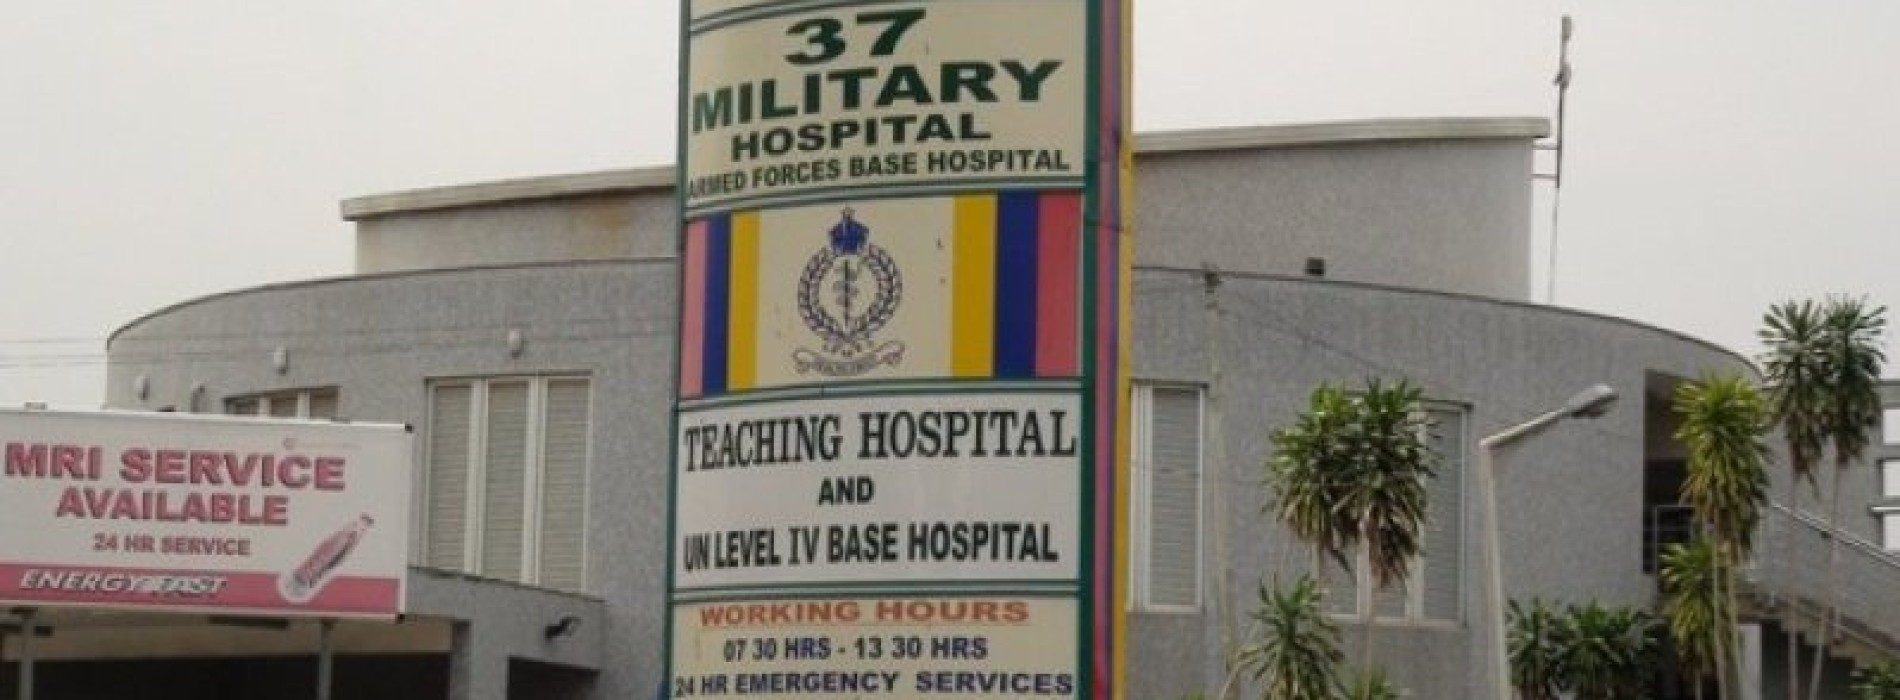 Male baby boom in Ghana's military hospital